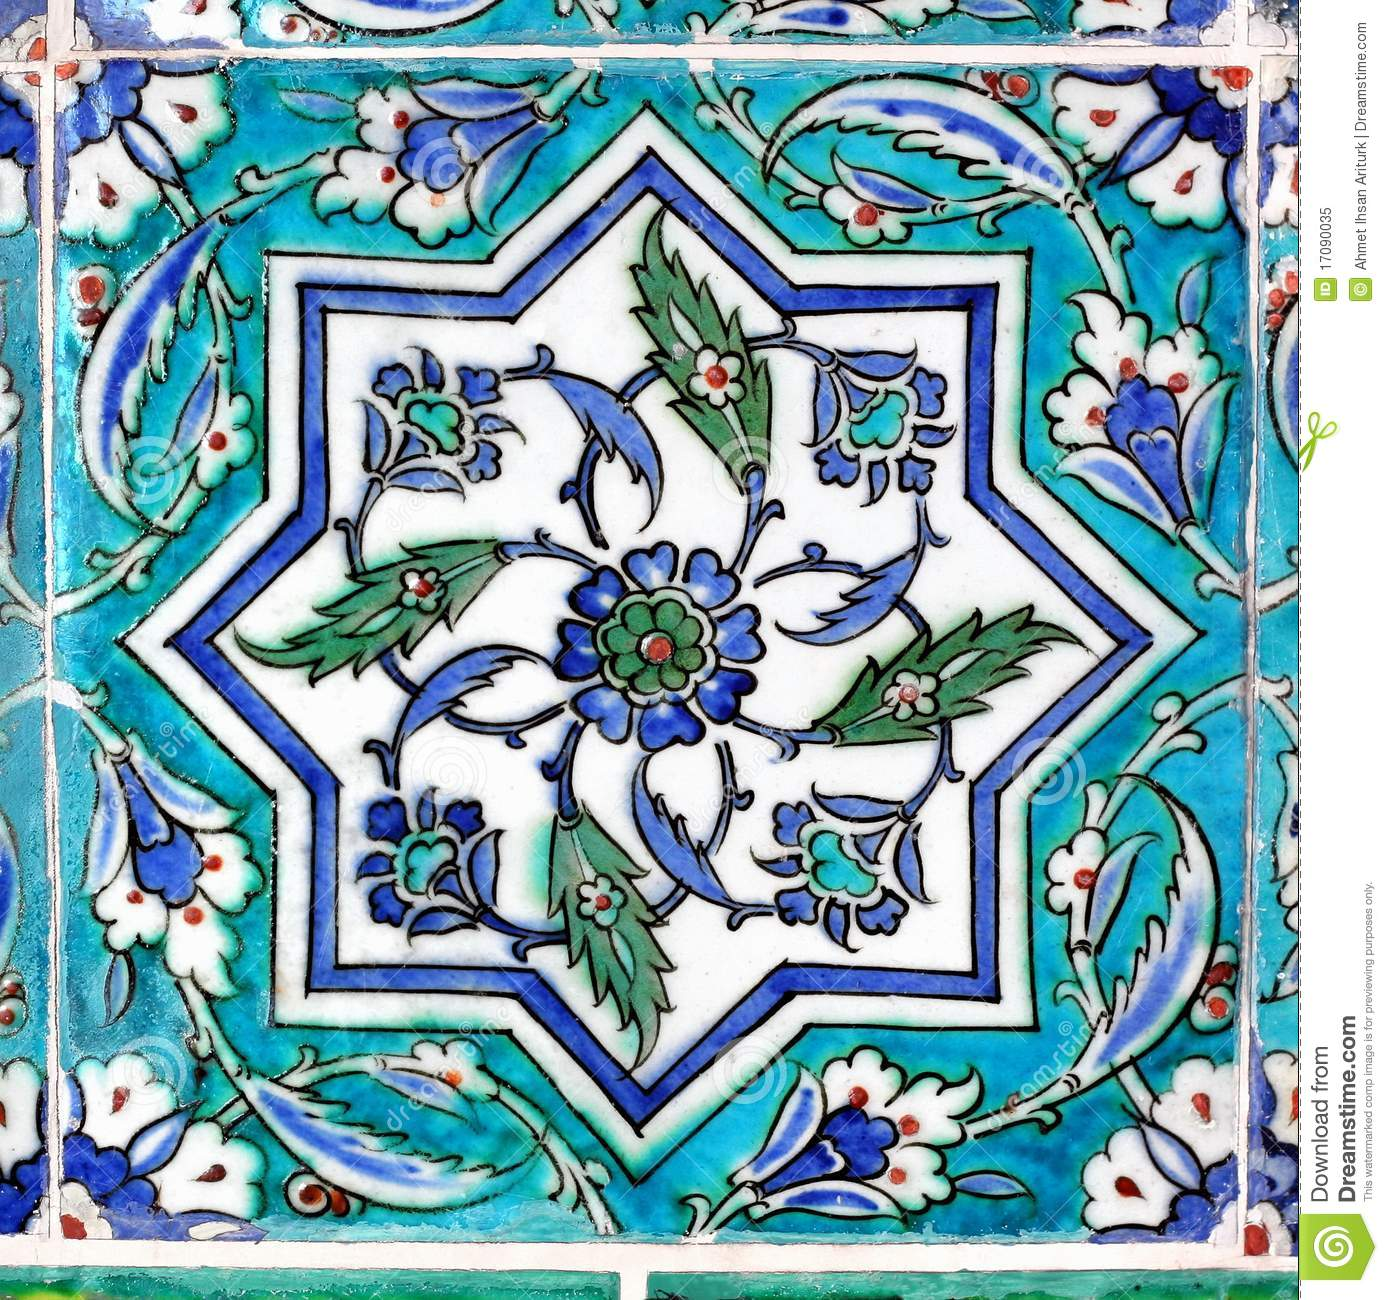 Turquoise Tile ottoman tile in turquoise royalty free stock photo - image: 17090035